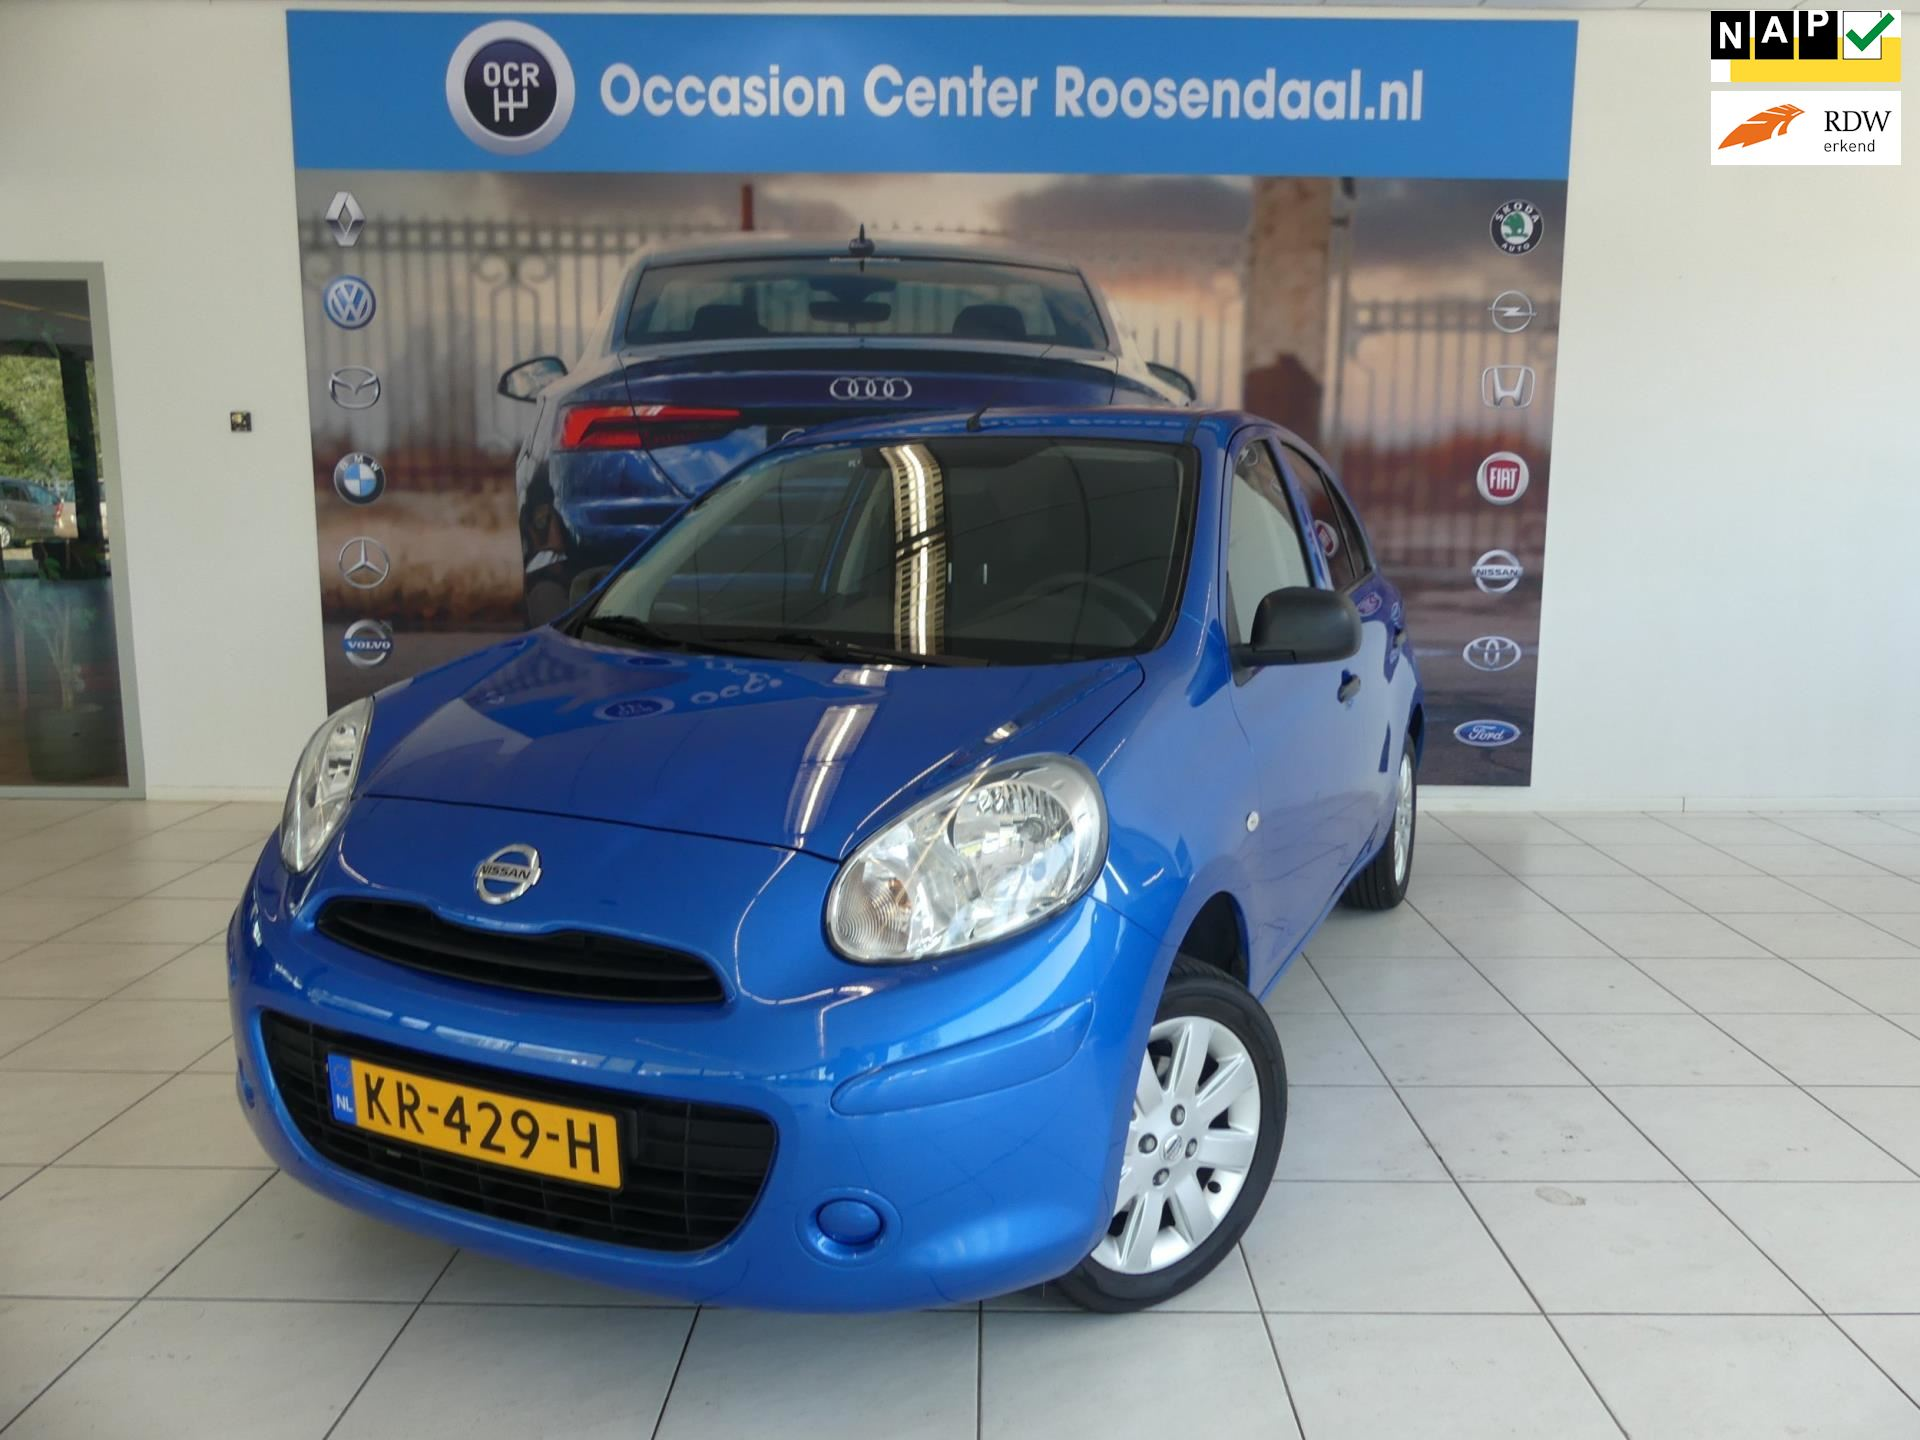 Nissan Micra occasion - Occasion Center Roosendaal